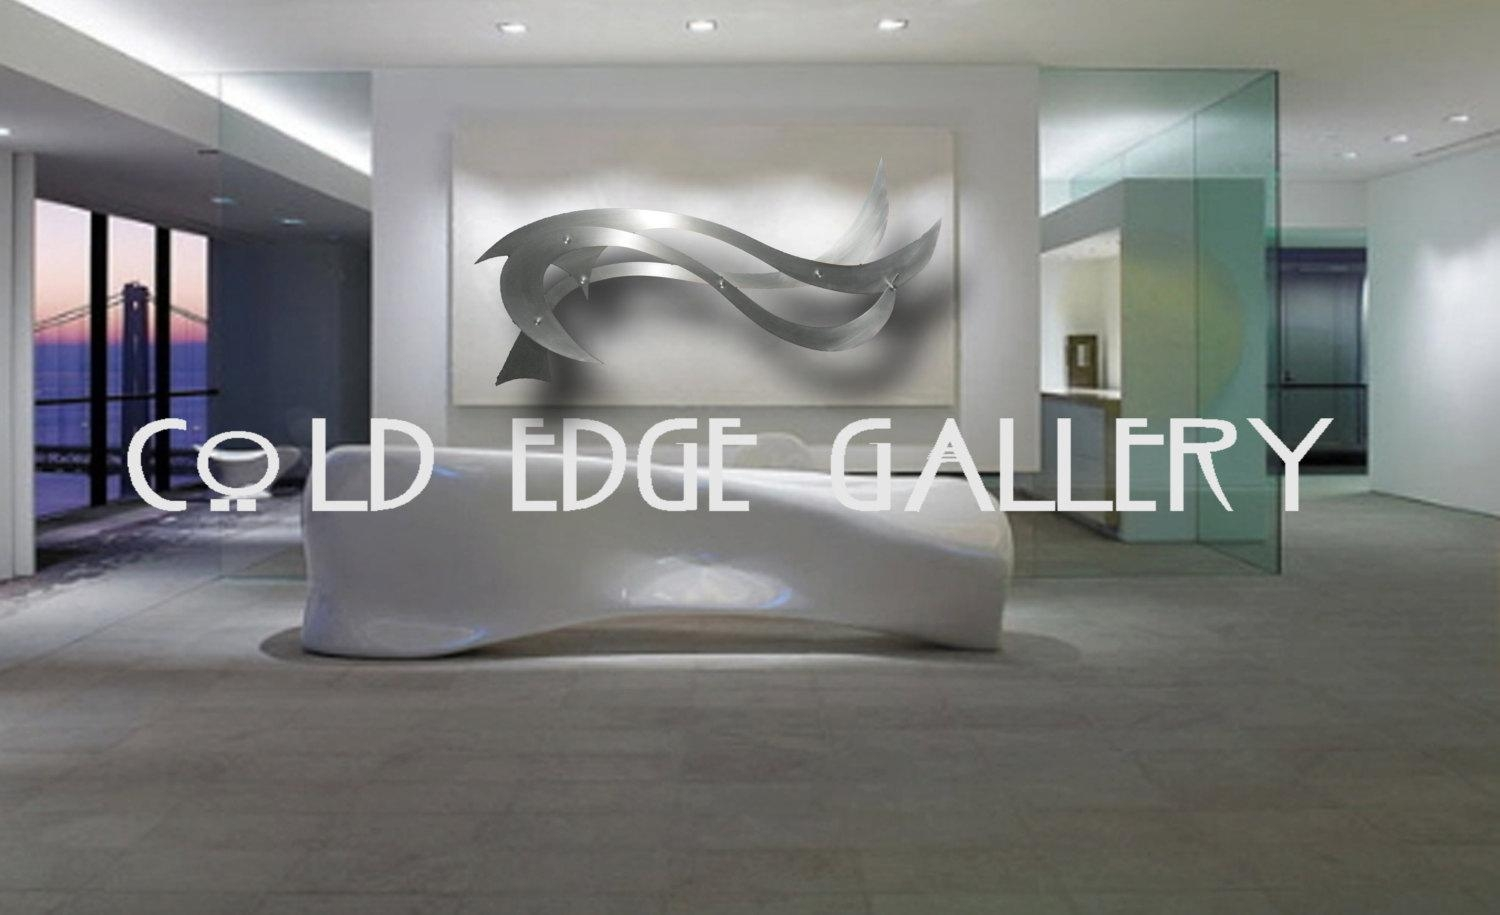 Large Metal Wall Art Corporate Wall Art Extra Large Wall Regarding Contemporary Metal Wall Art Sculpture (Image 8 of 20)